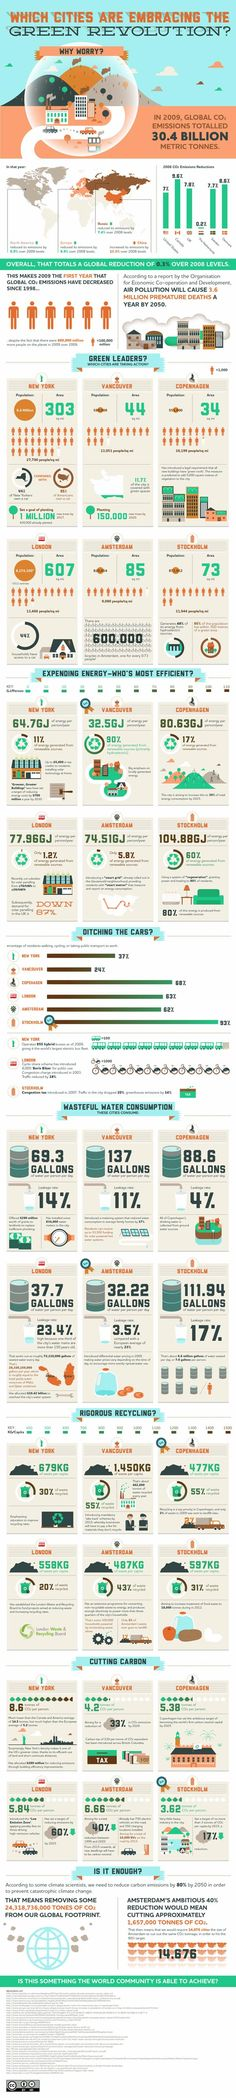 greenest cities in the world, world's greenest cities, infographic, green graphics, sustainable design, green design, urban design